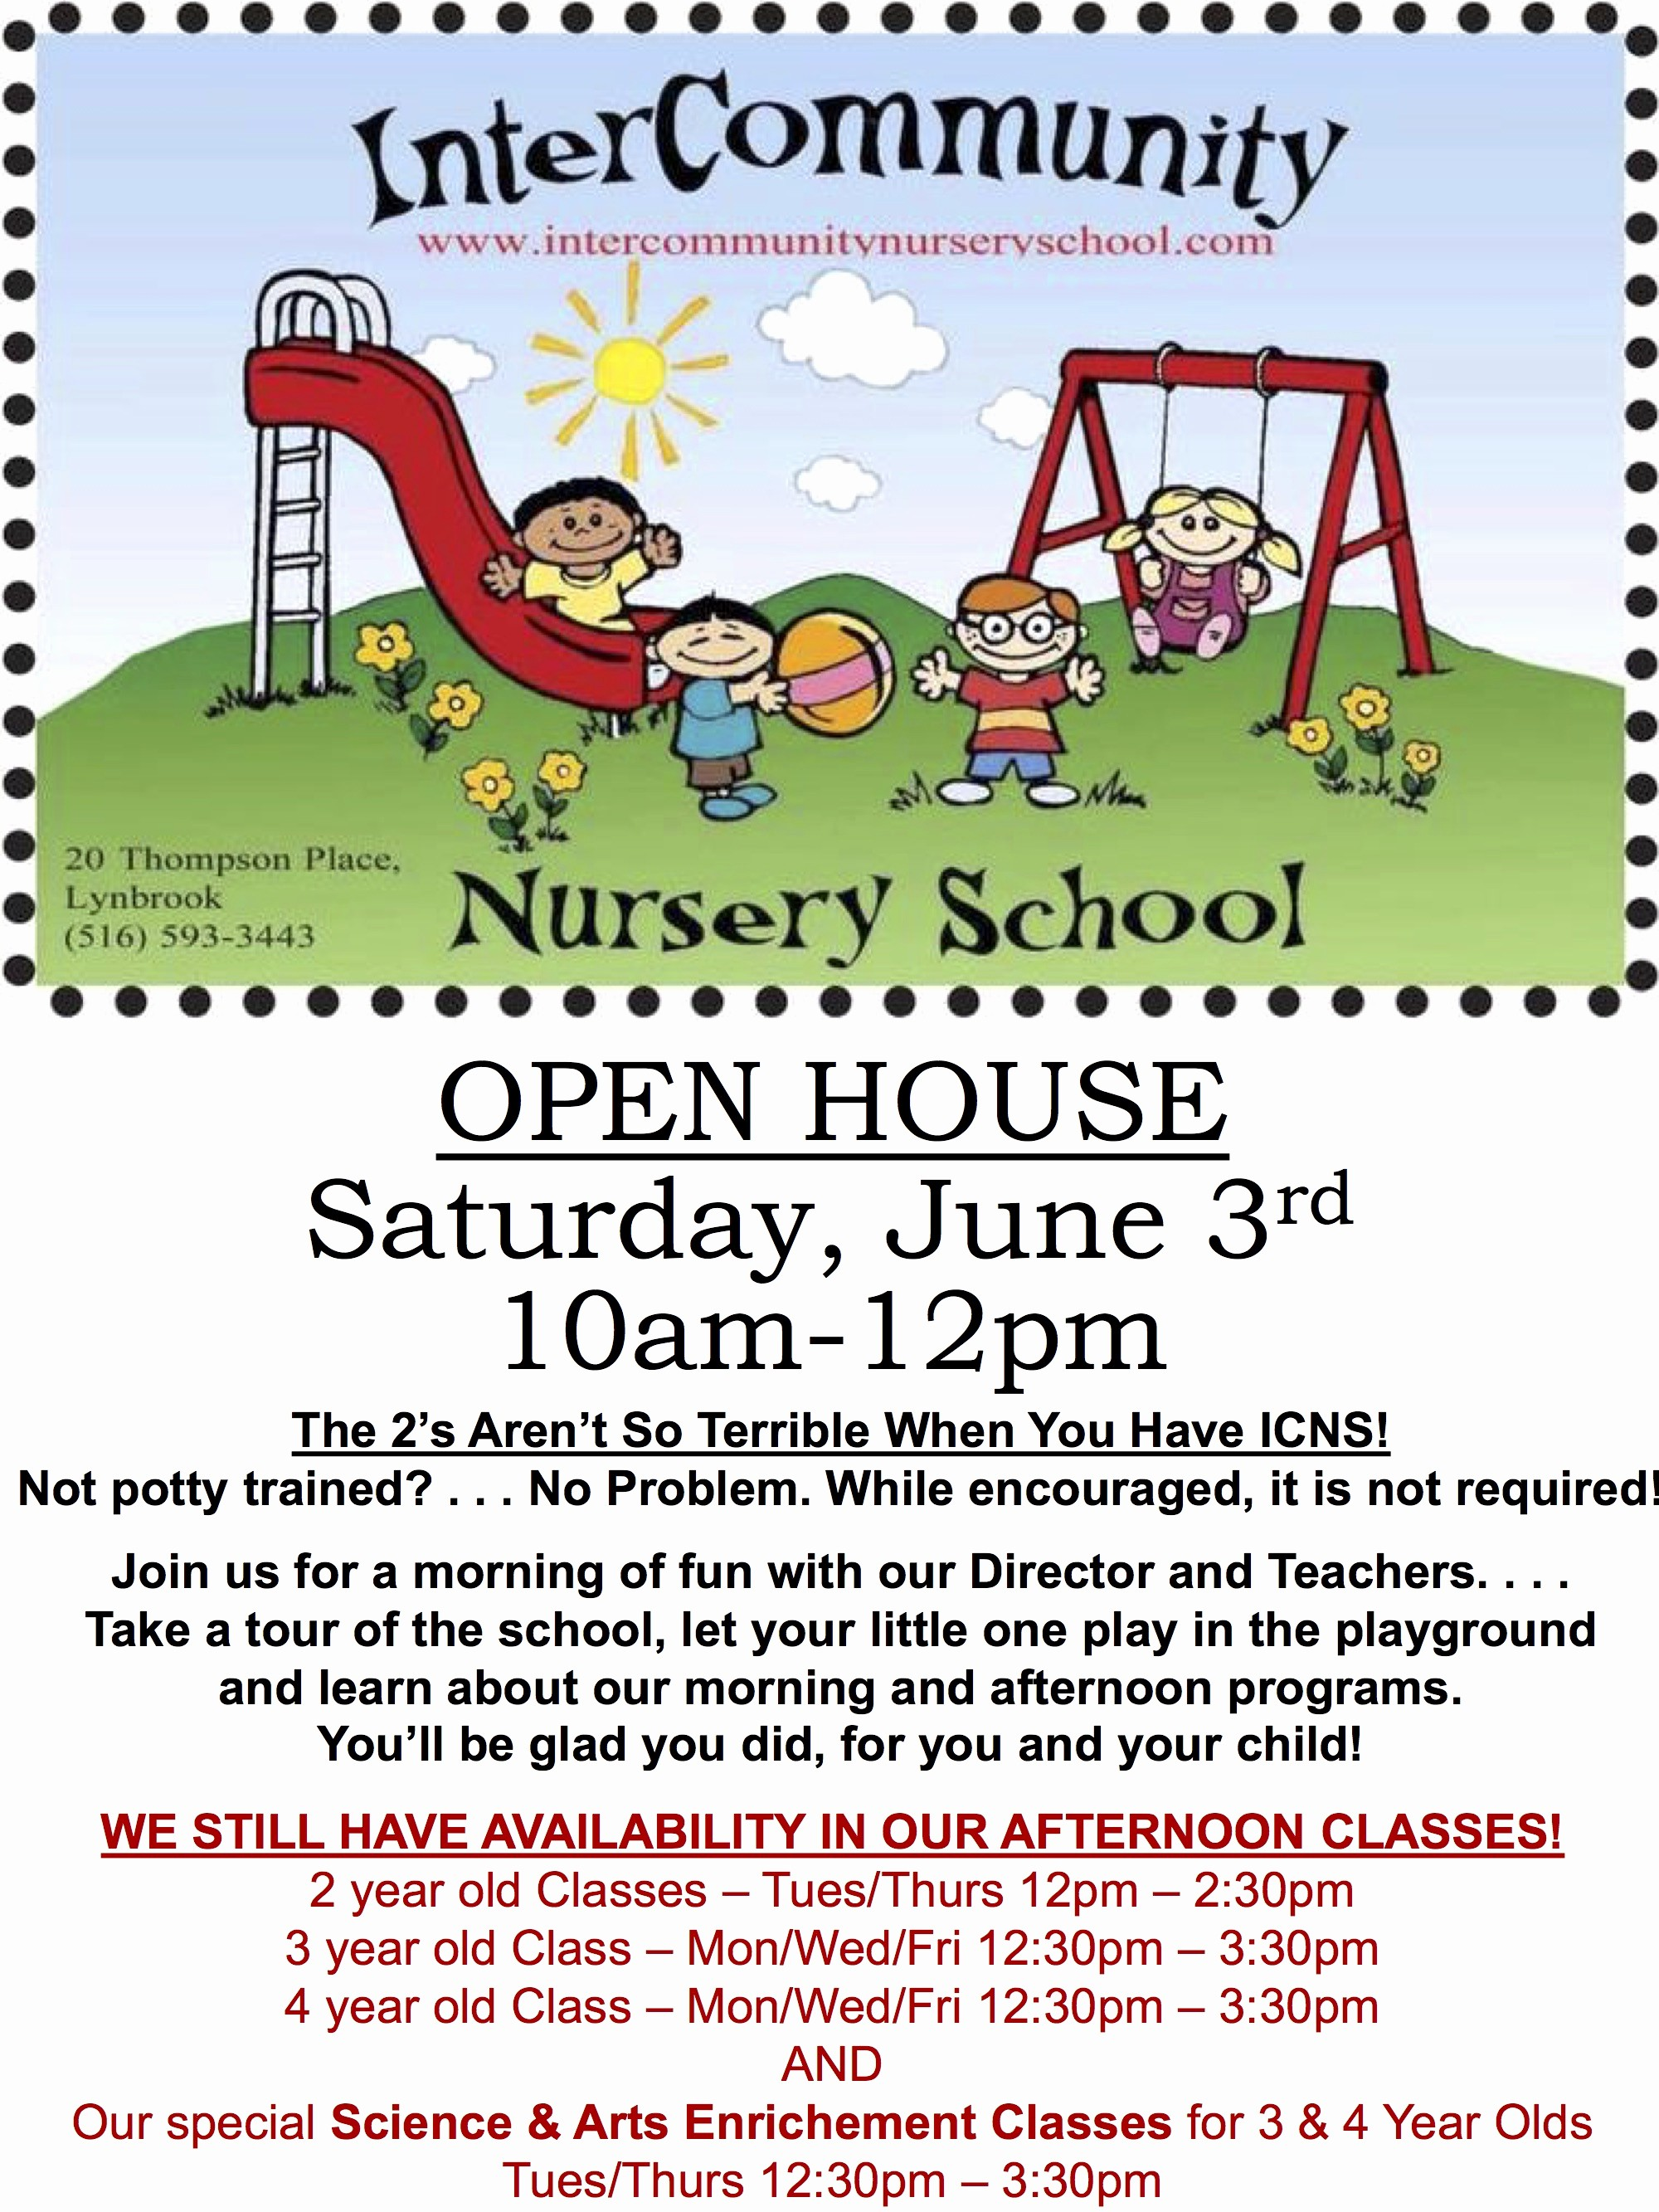 Open House Flyer for School Best Of Icns where Parents Can Stay for their Child's